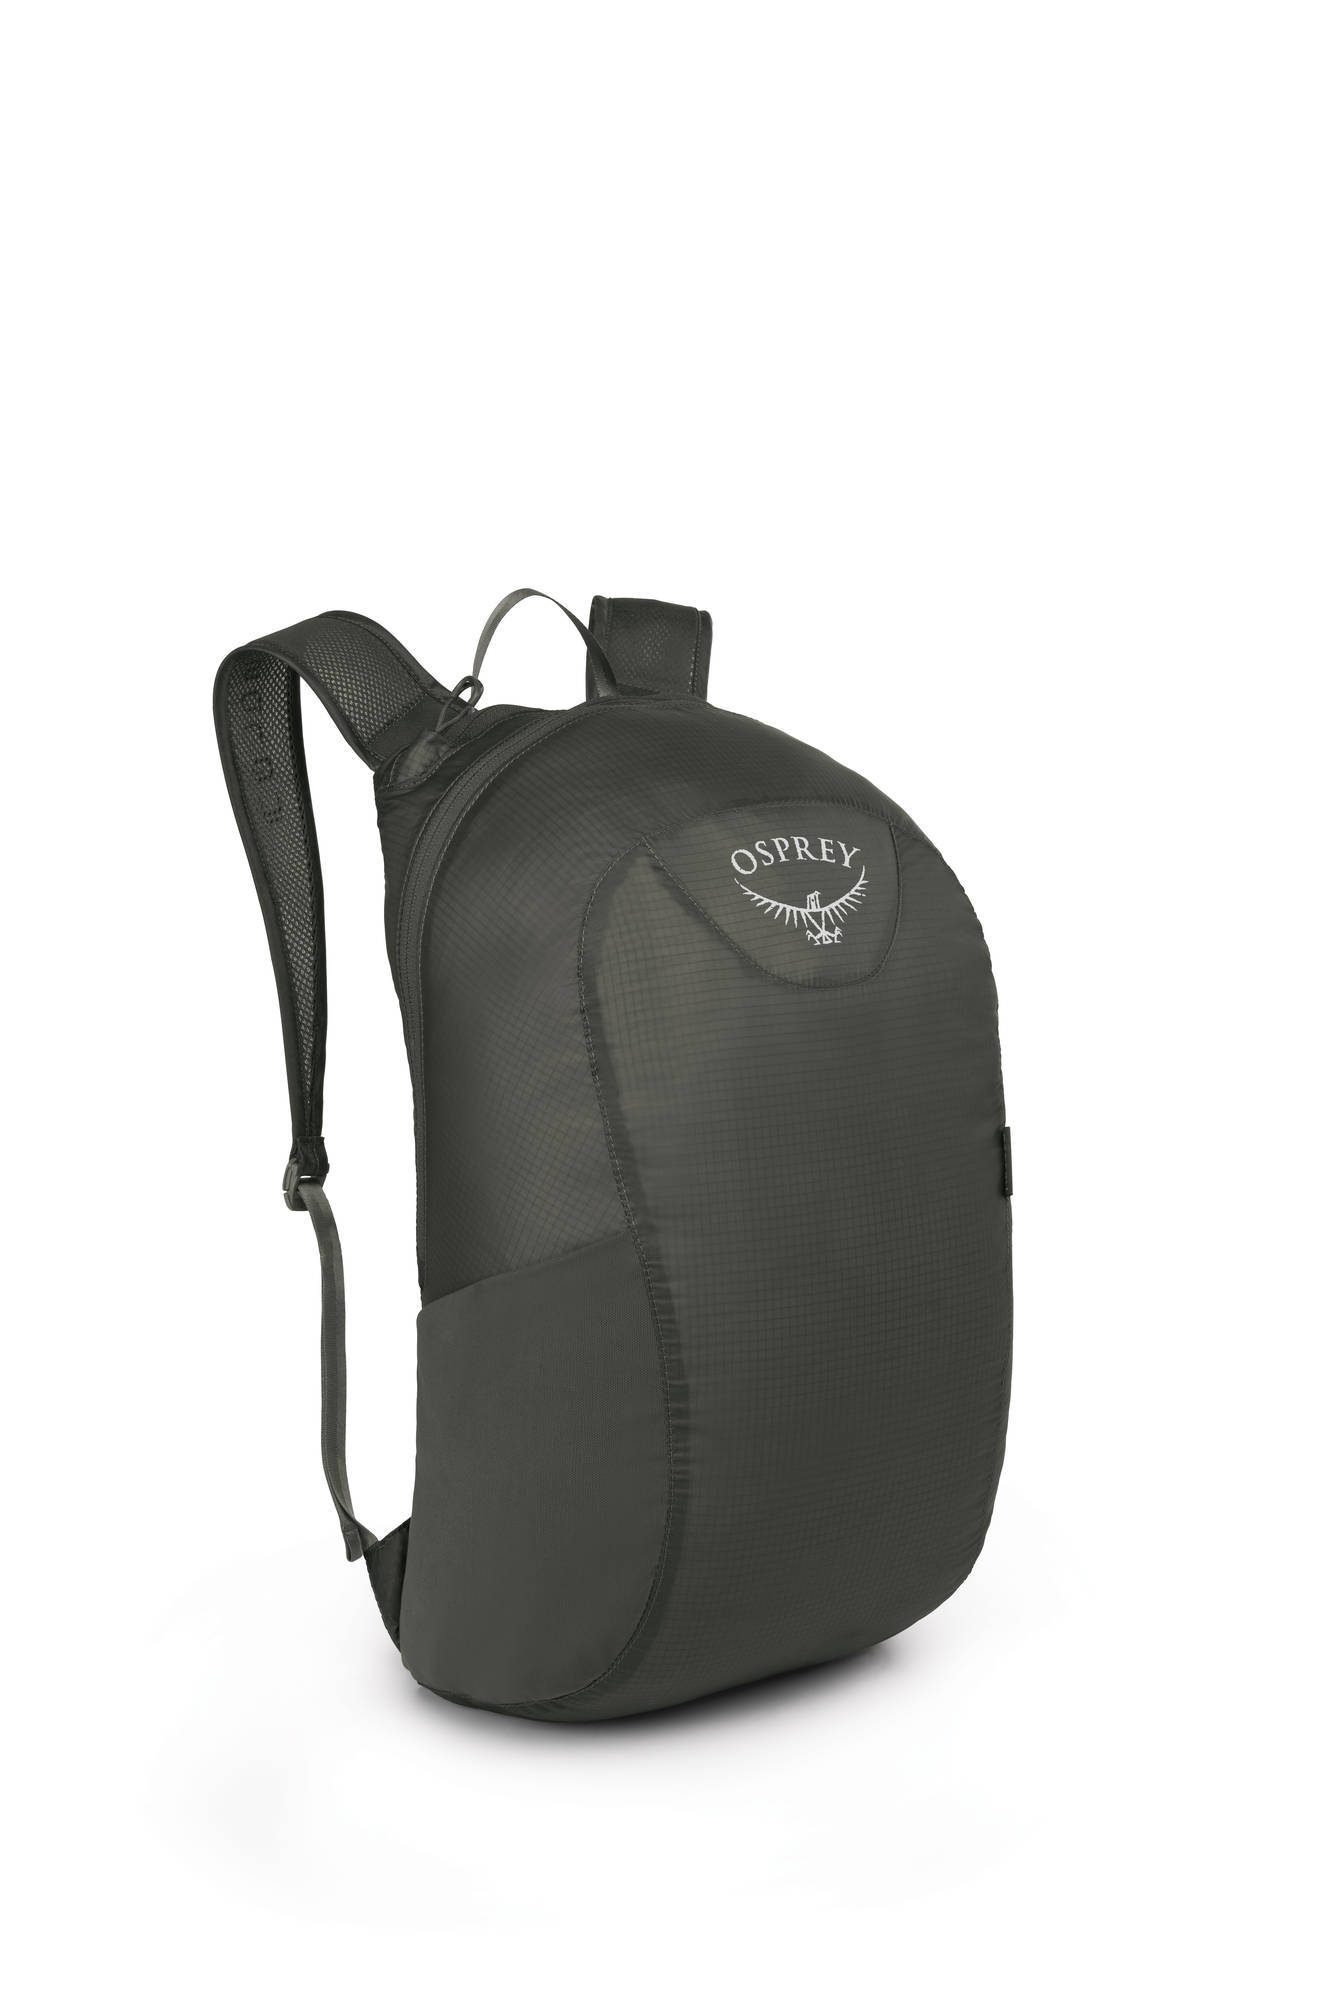 Аксессуары Рюкзак складной Osprey Ultralight Stuff Pack UL_Stuff_Pack_Side_Shadow_Grey_web.jpg